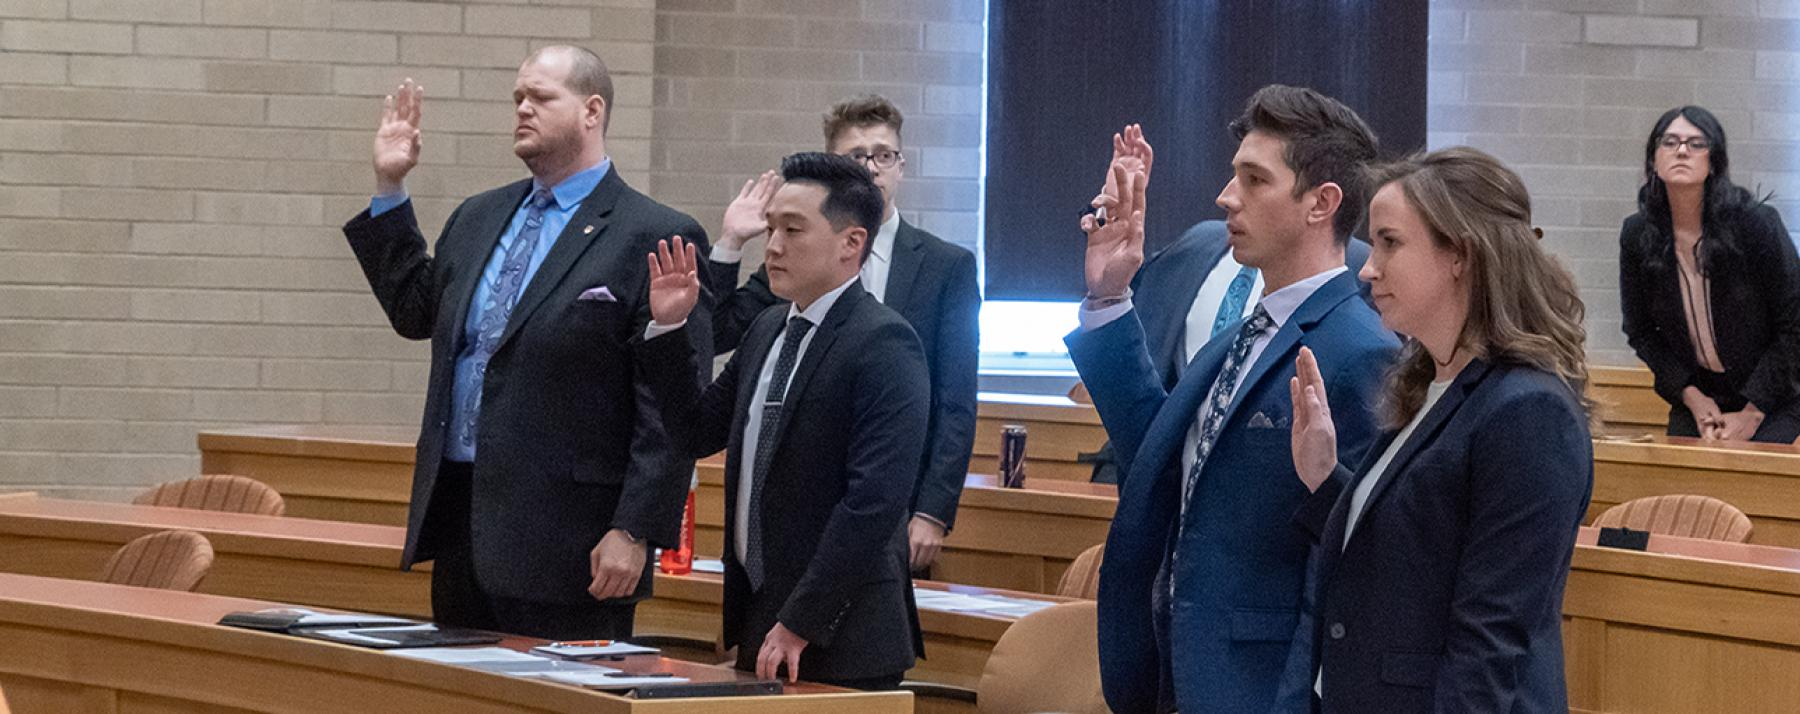 Denver Law students taking the oath